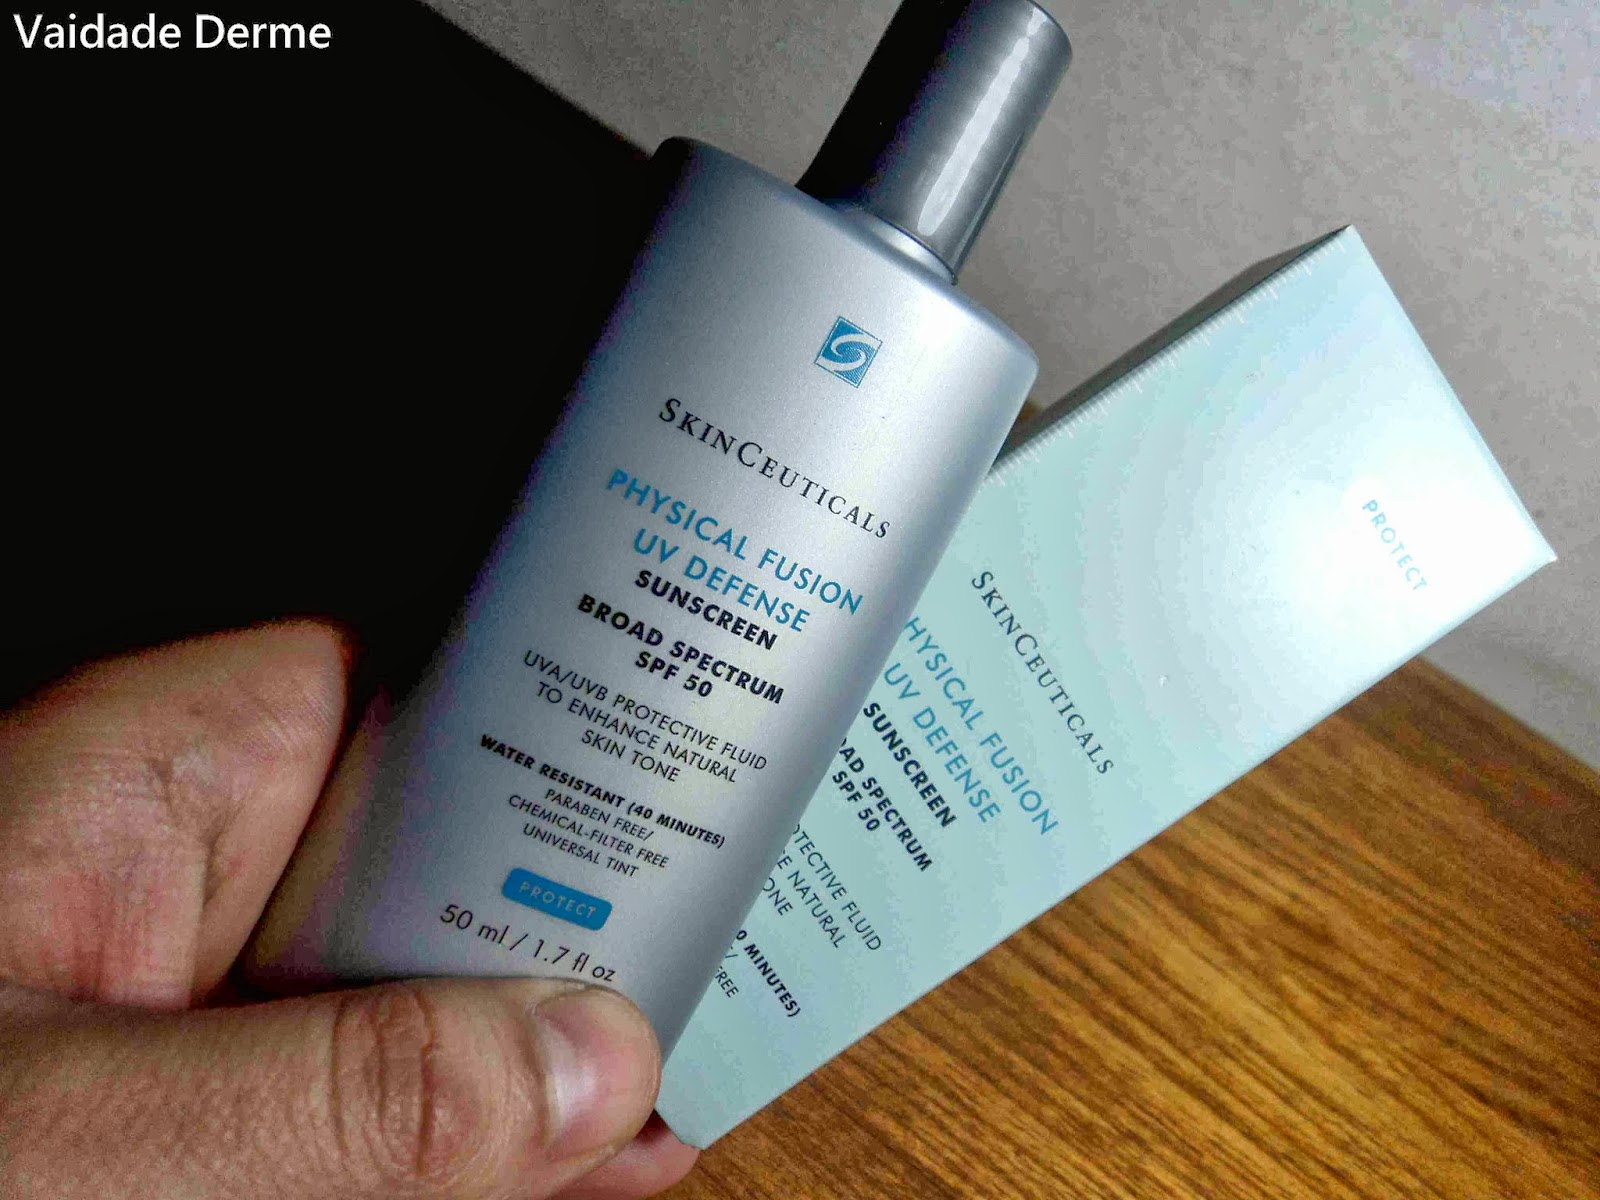 Physical Fusion UV Defense da SkinCeuticals